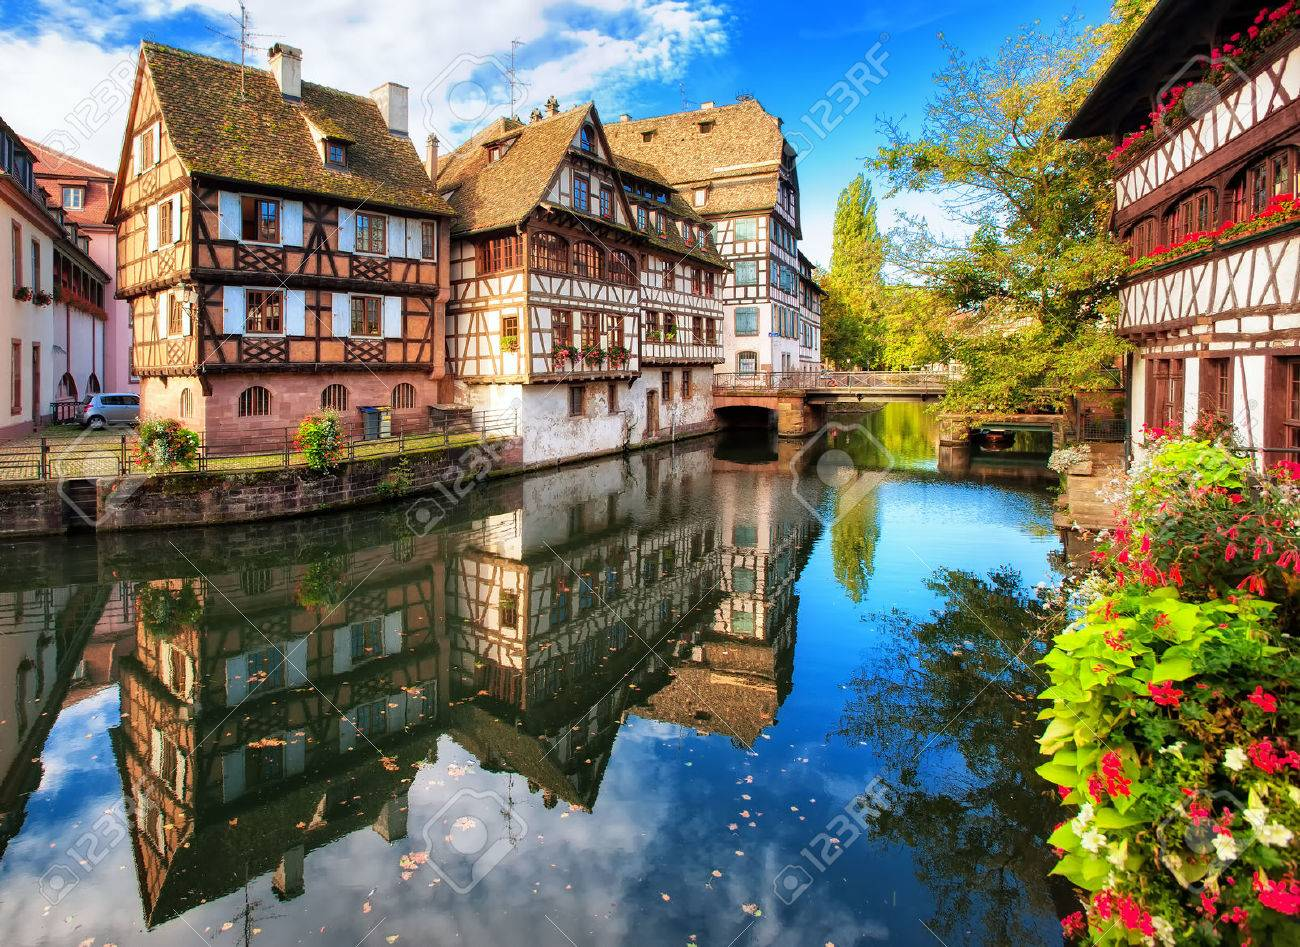 Traditional half-timbered houses in La Petite France district, Strasbourg, France - 48879114